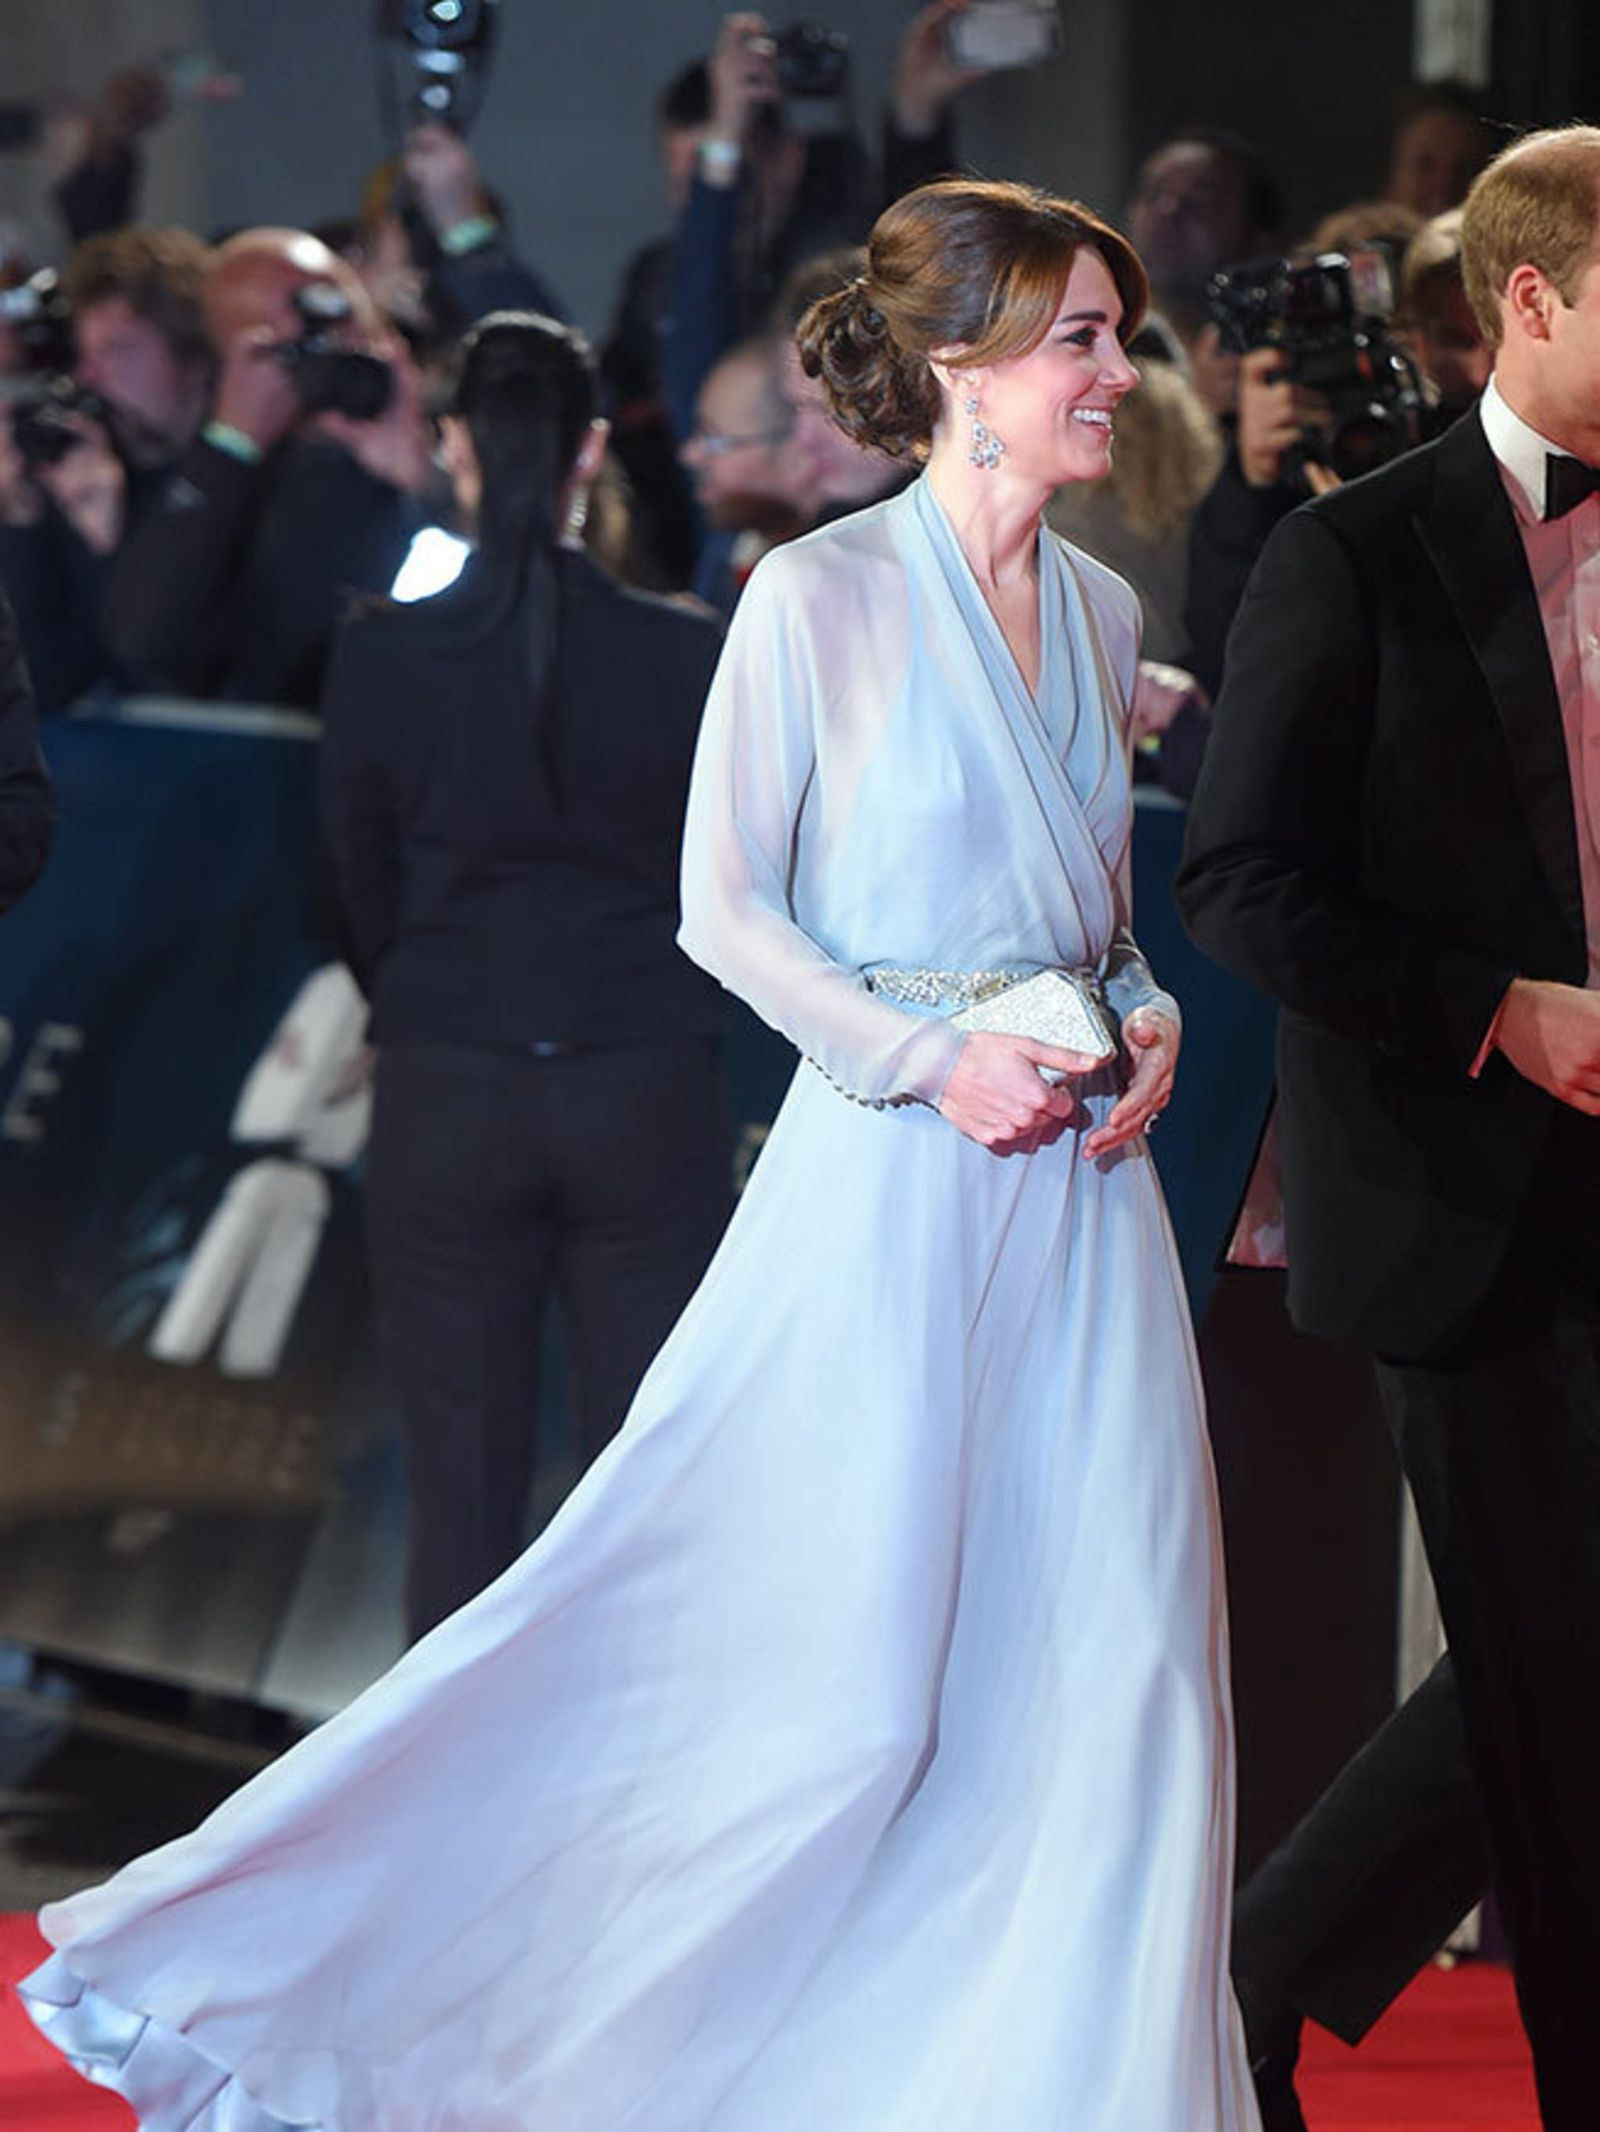 Welcome to Celebrity World: A Duchess would never wear